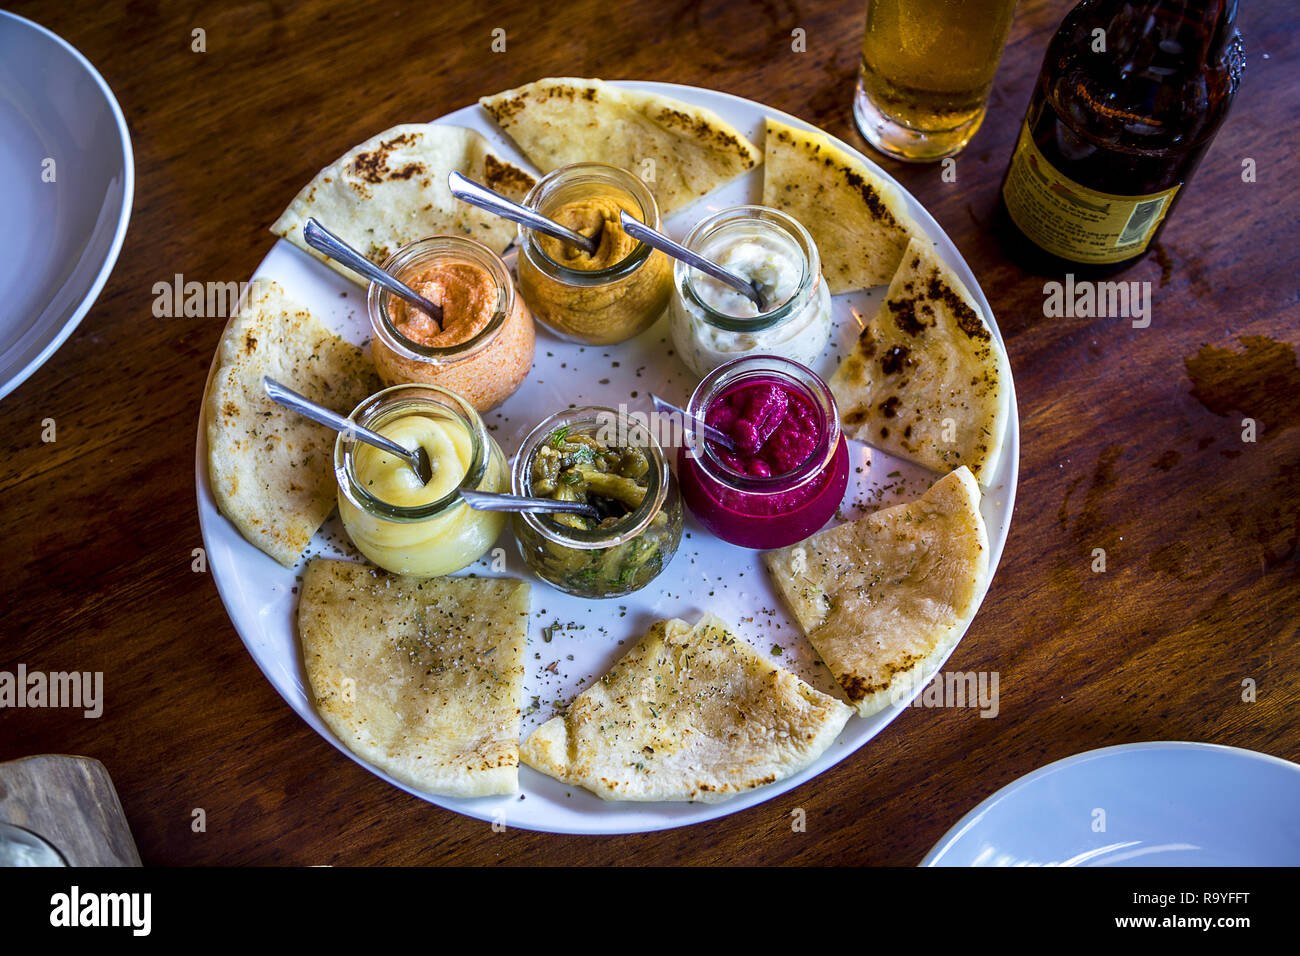 plate of flat bread and assorted humus in jars. - Stock Image